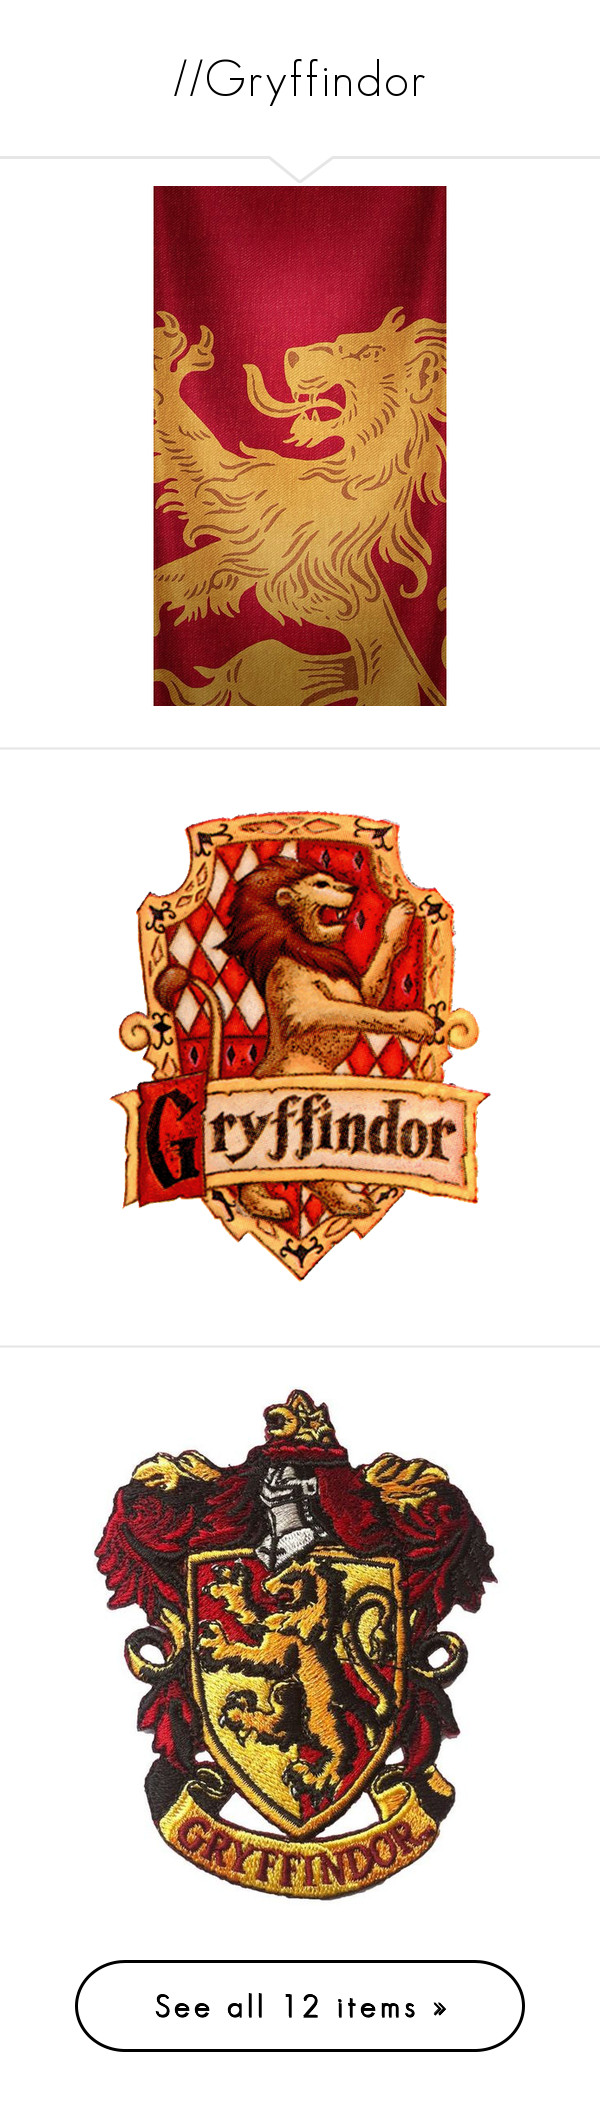 Gryffindor By Bainidhe Liked On Polyvore Featuring Harry Potter